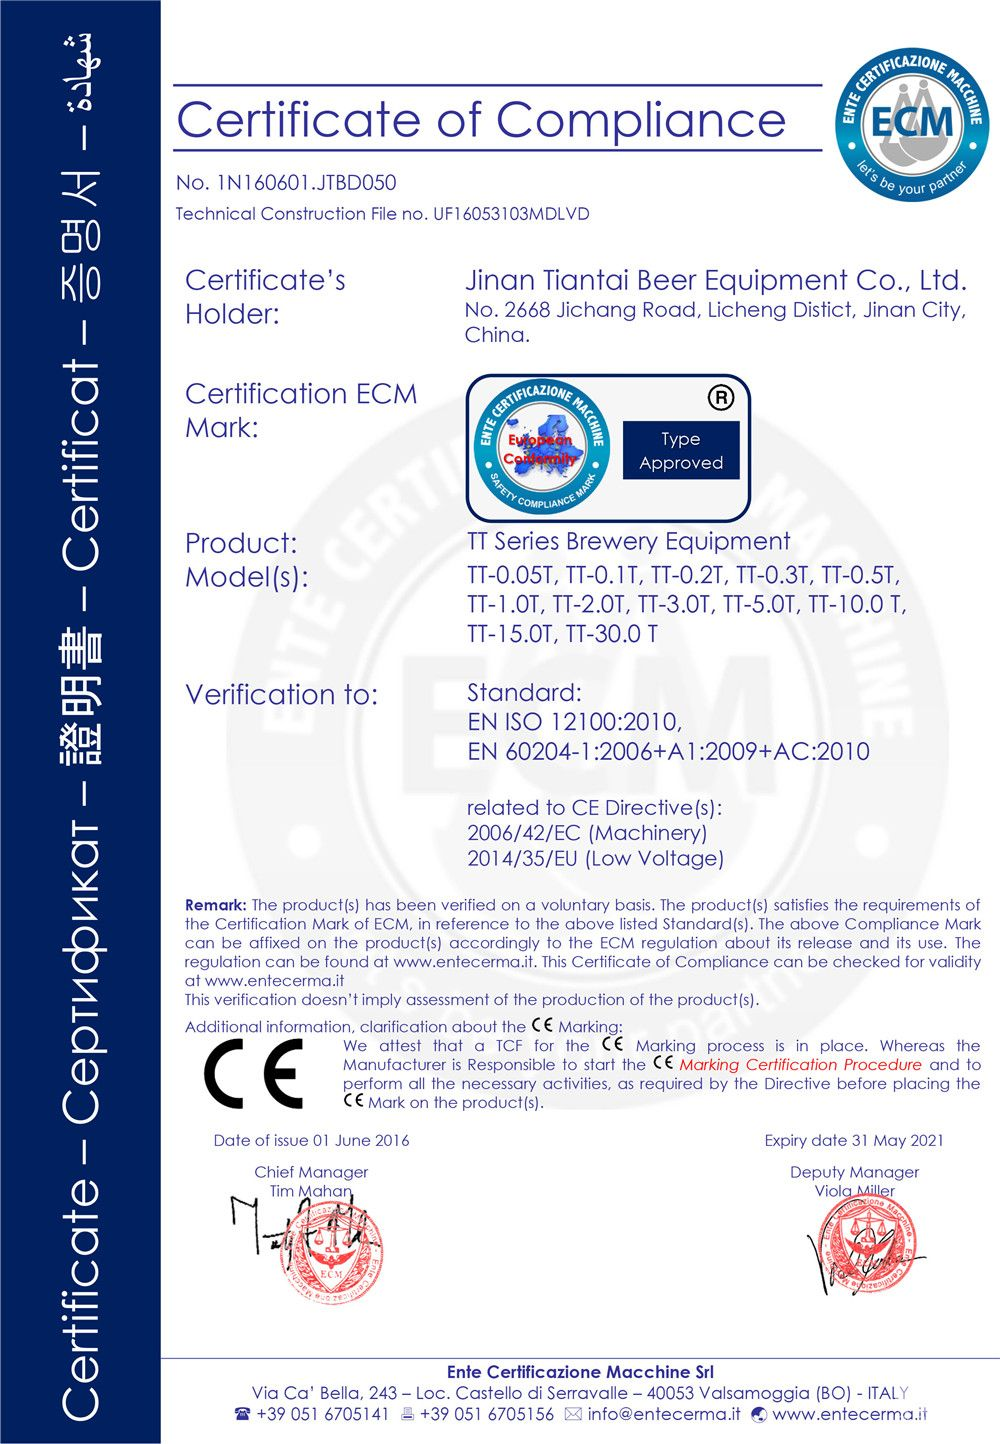 Iso Ce Certifications Pressure Equipment Machinery And Low